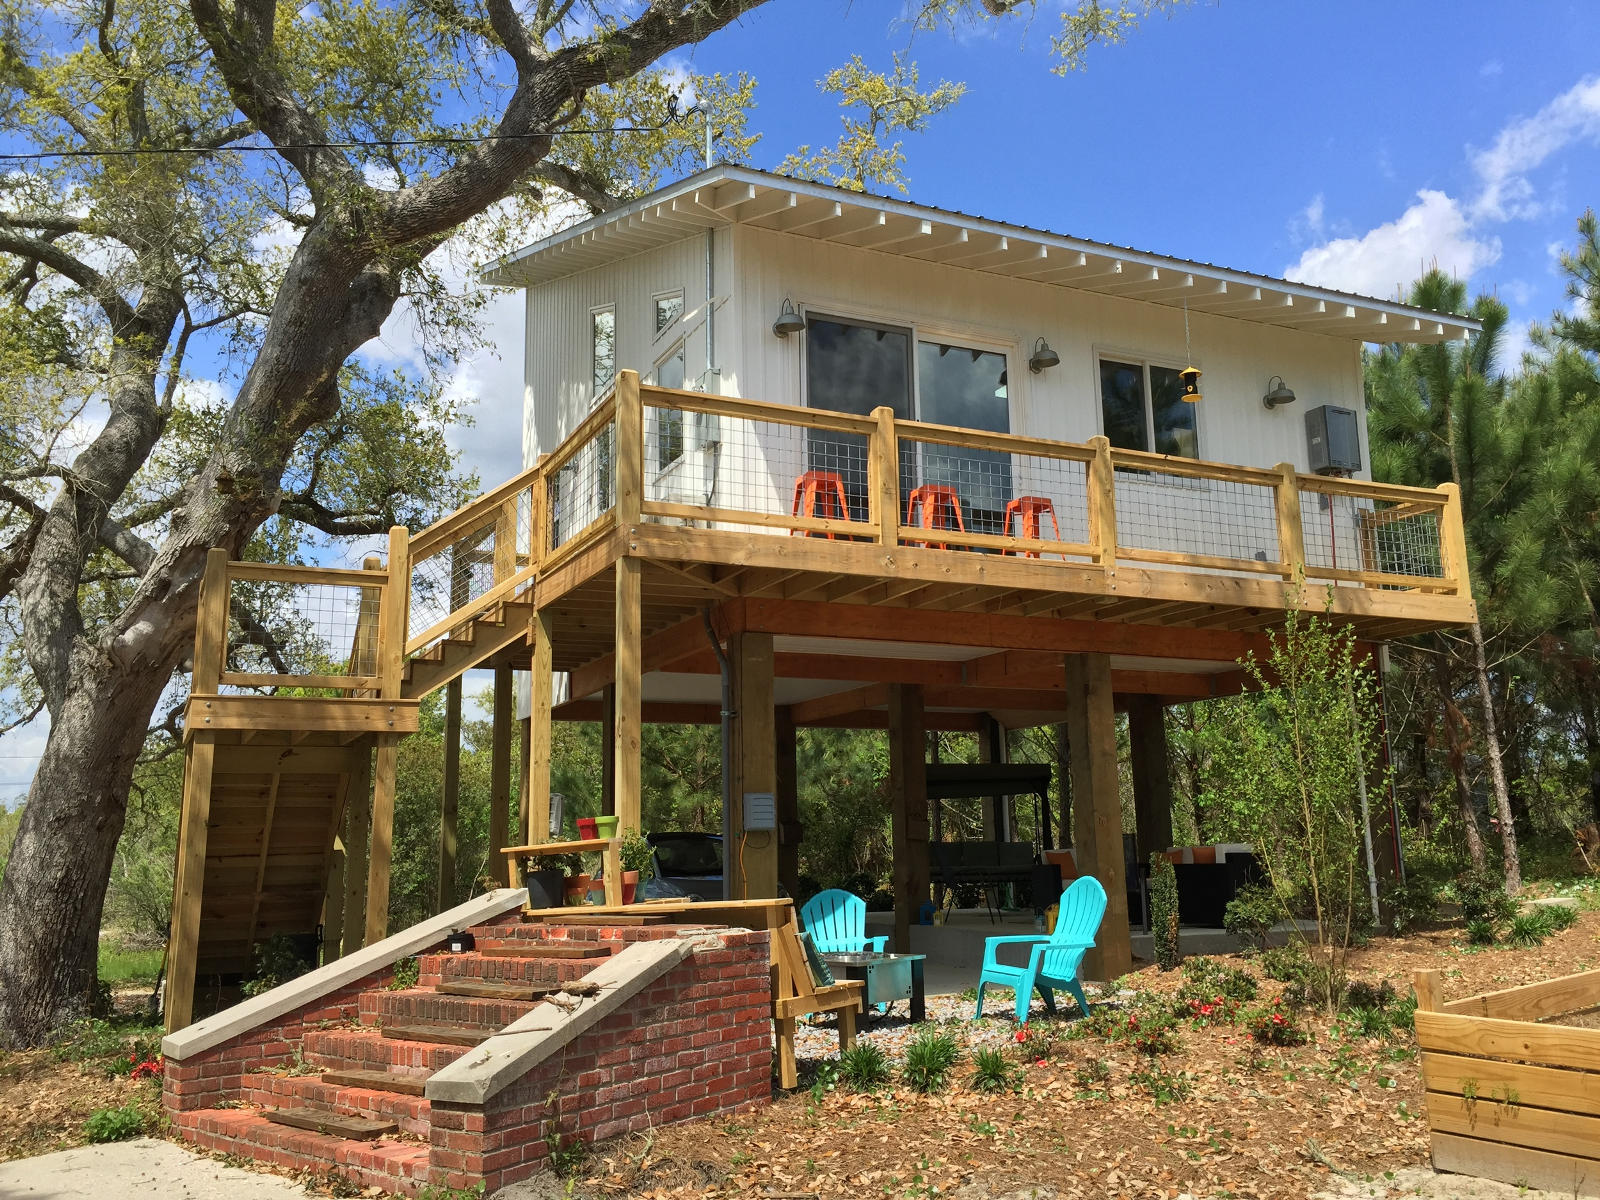 Pye s beach house standard creative small house bliss for Small house bliss